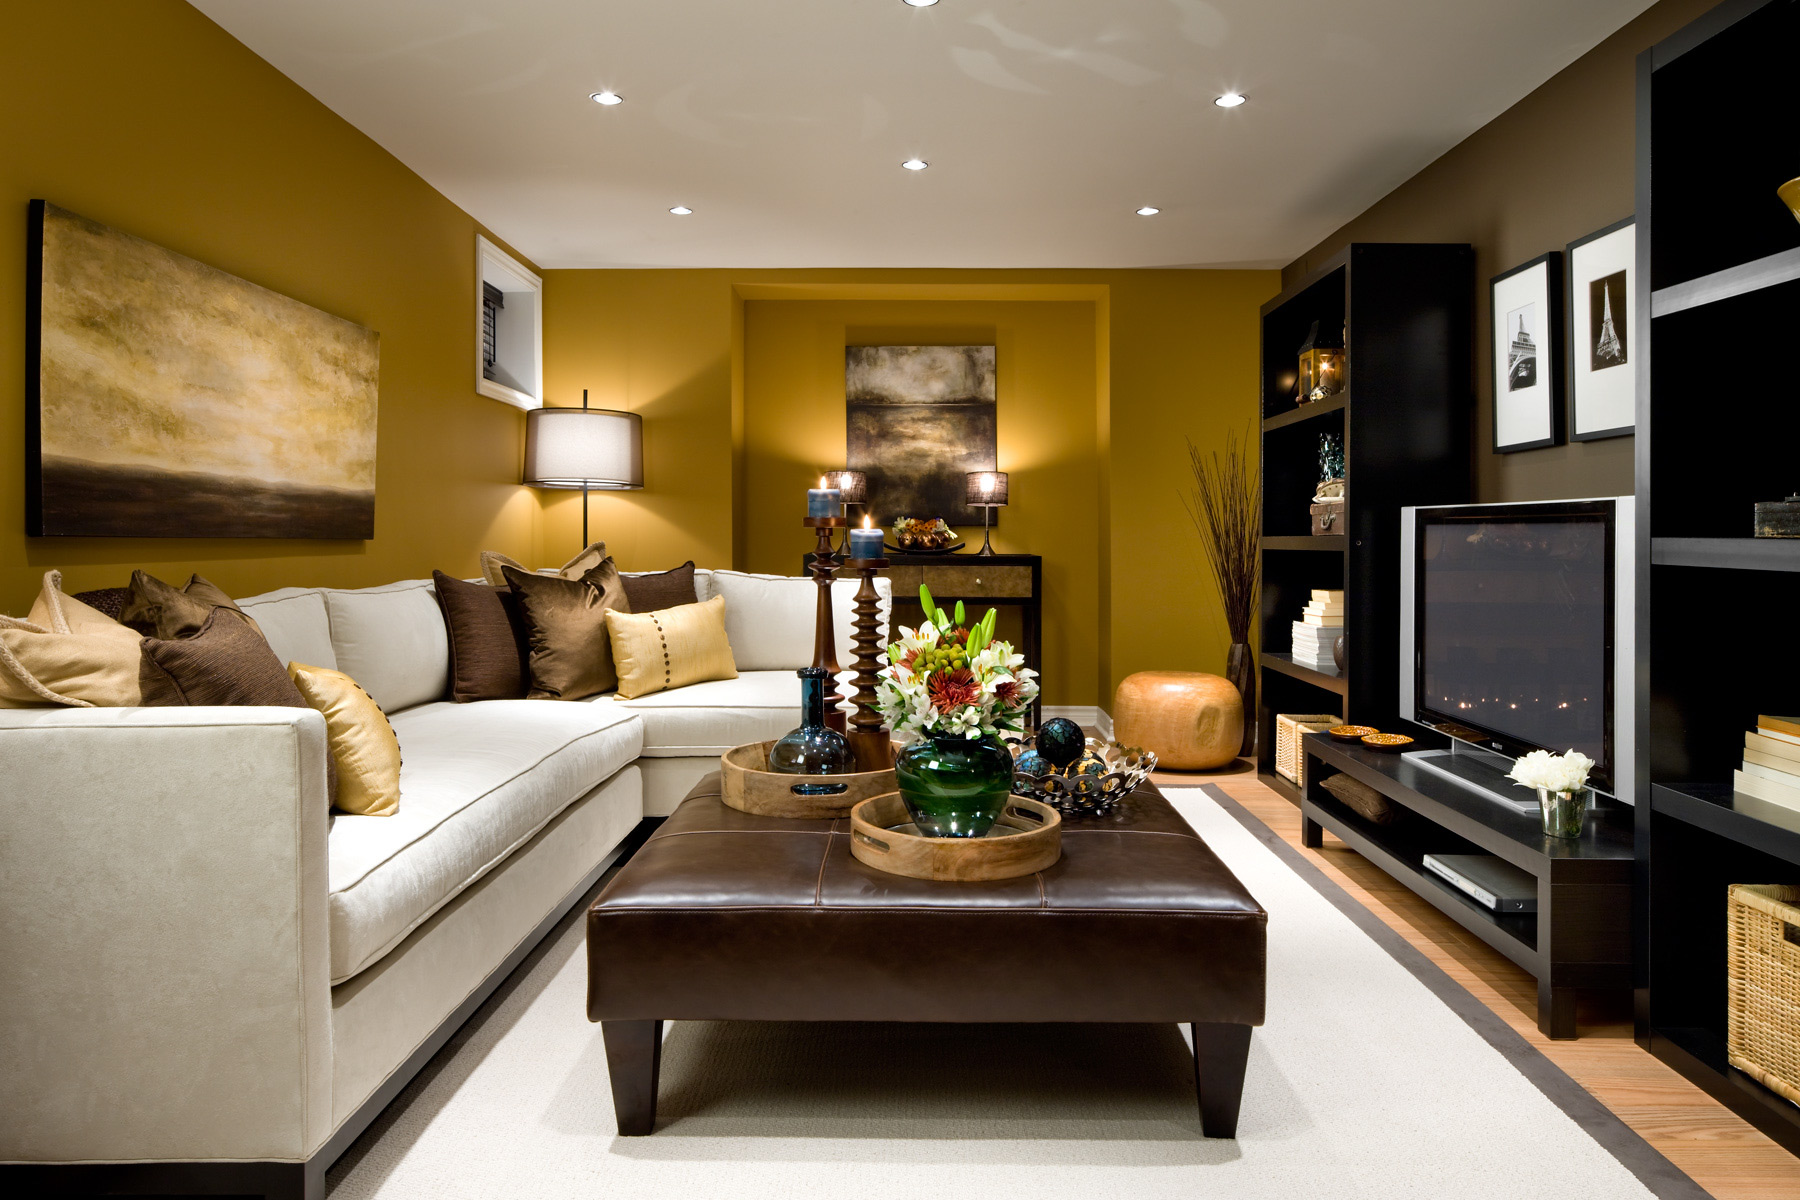 50 Best Small Living Room Design Ideas for 2017